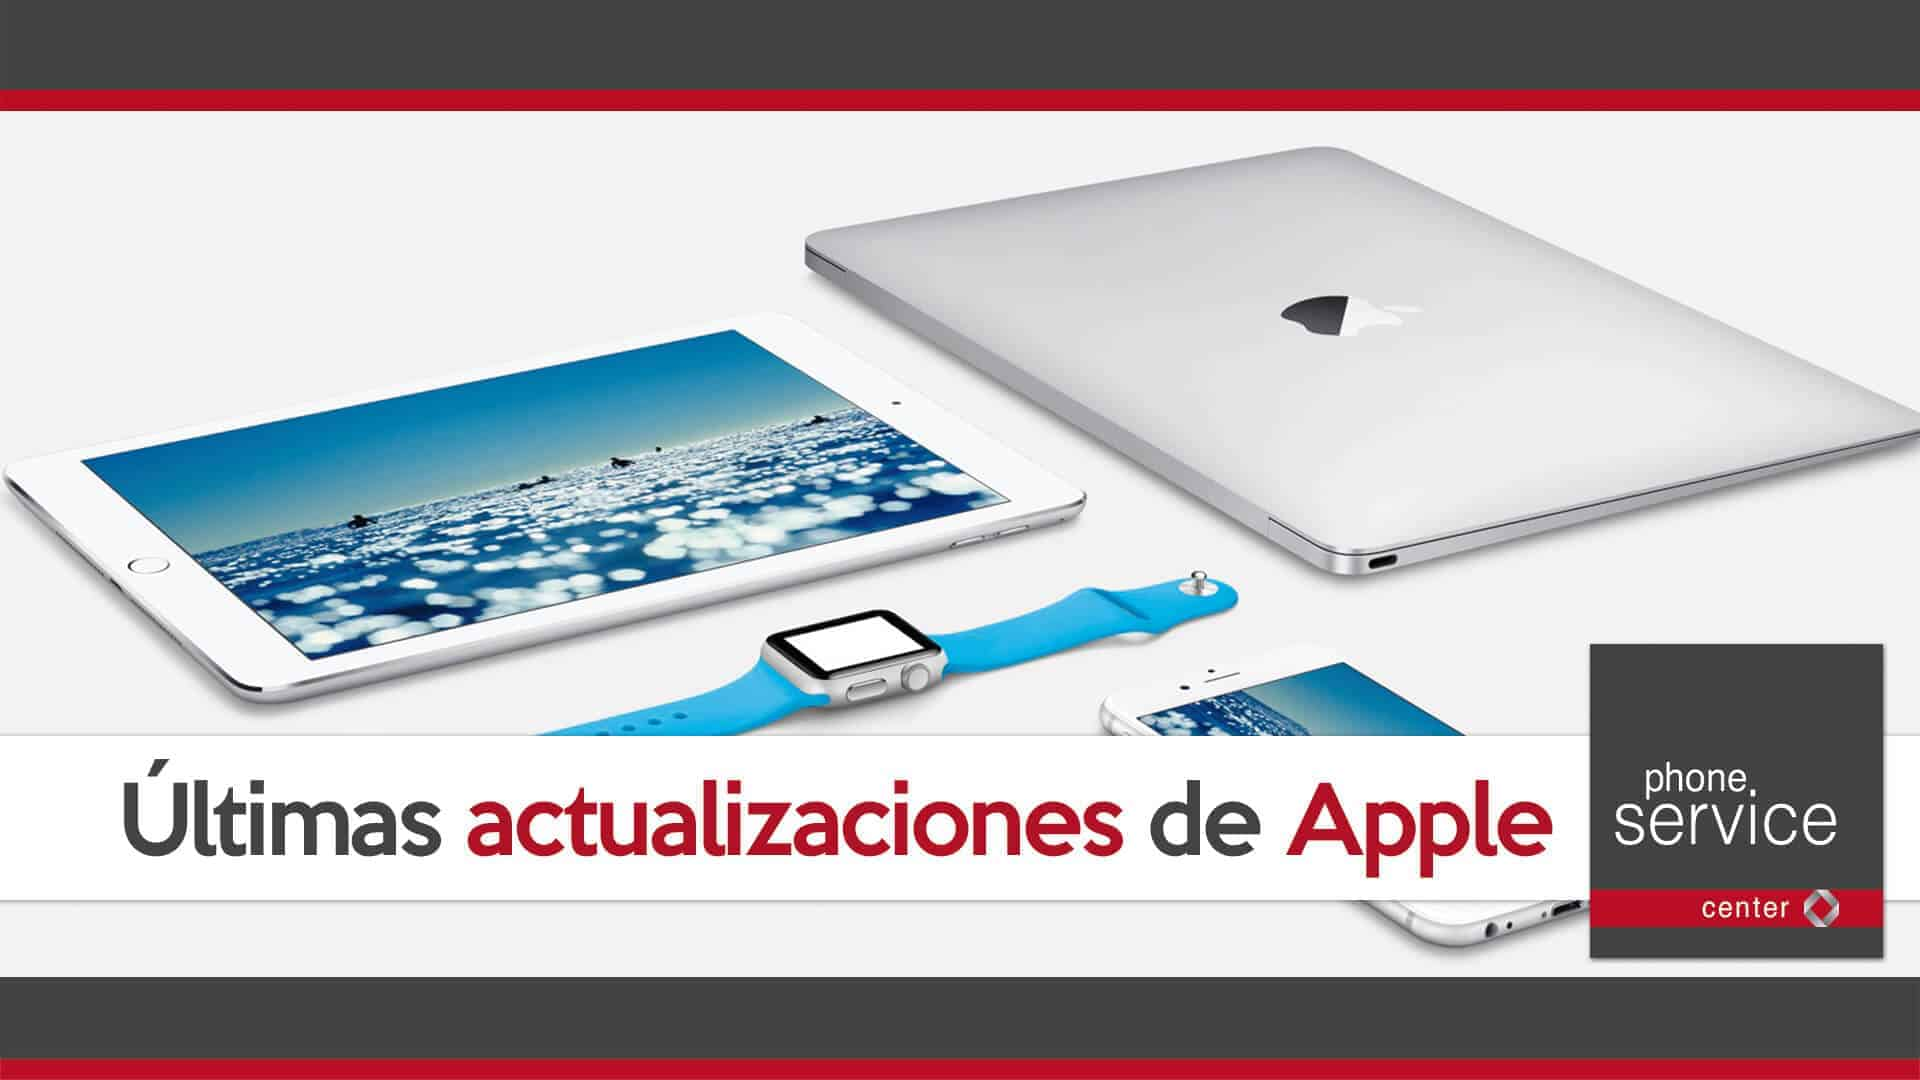 Ultimas actualizaciones de Apple